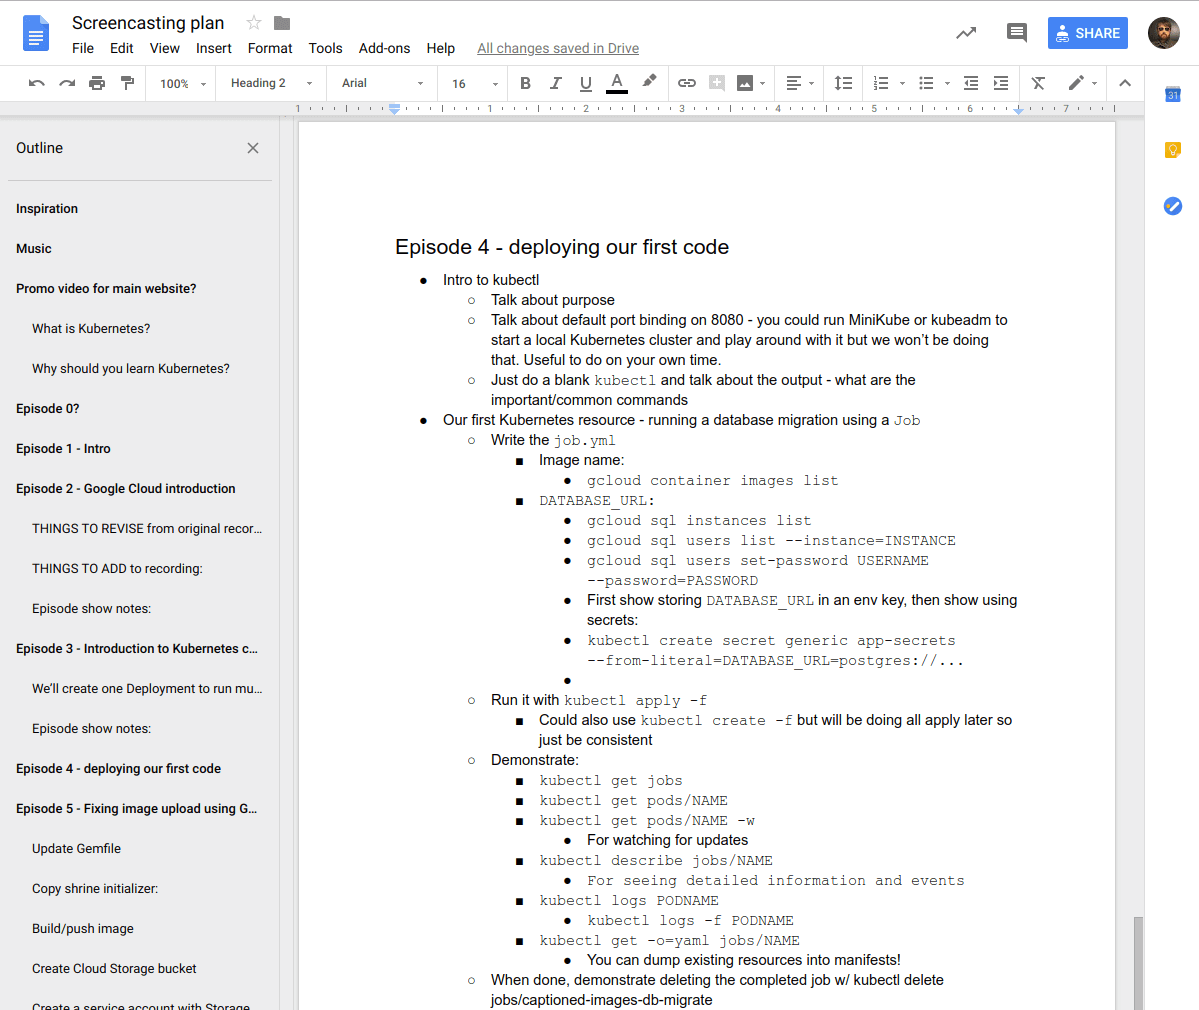 Google Docs notes